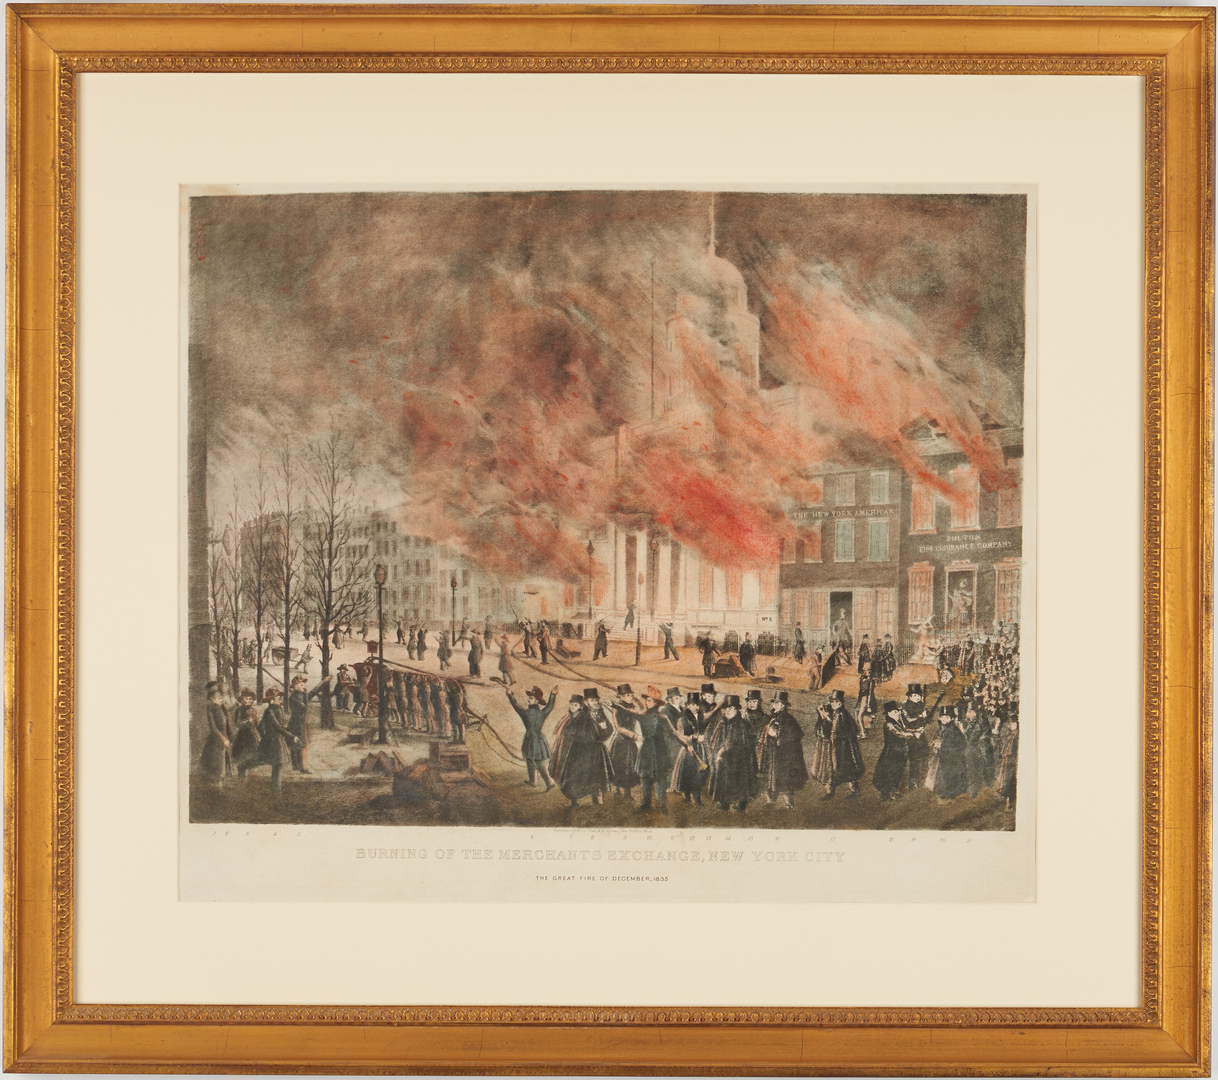 Lot 128: Burning of the NY Merchant's Exchange, 1909 lithograph